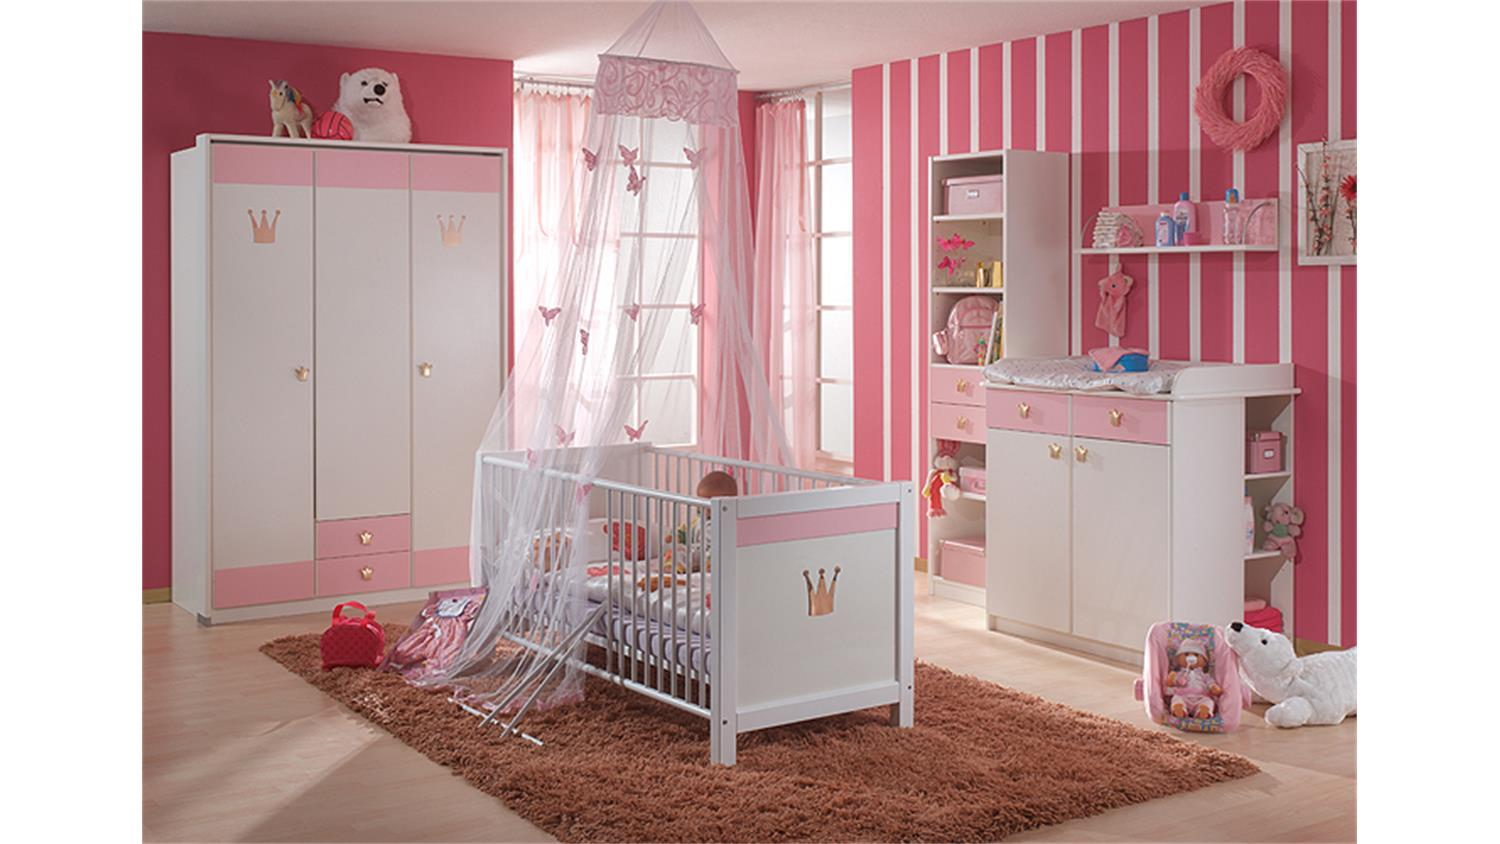 babybett kinderbett cinderella wei und ros. Black Bedroom Furniture Sets. Home Design Ideas